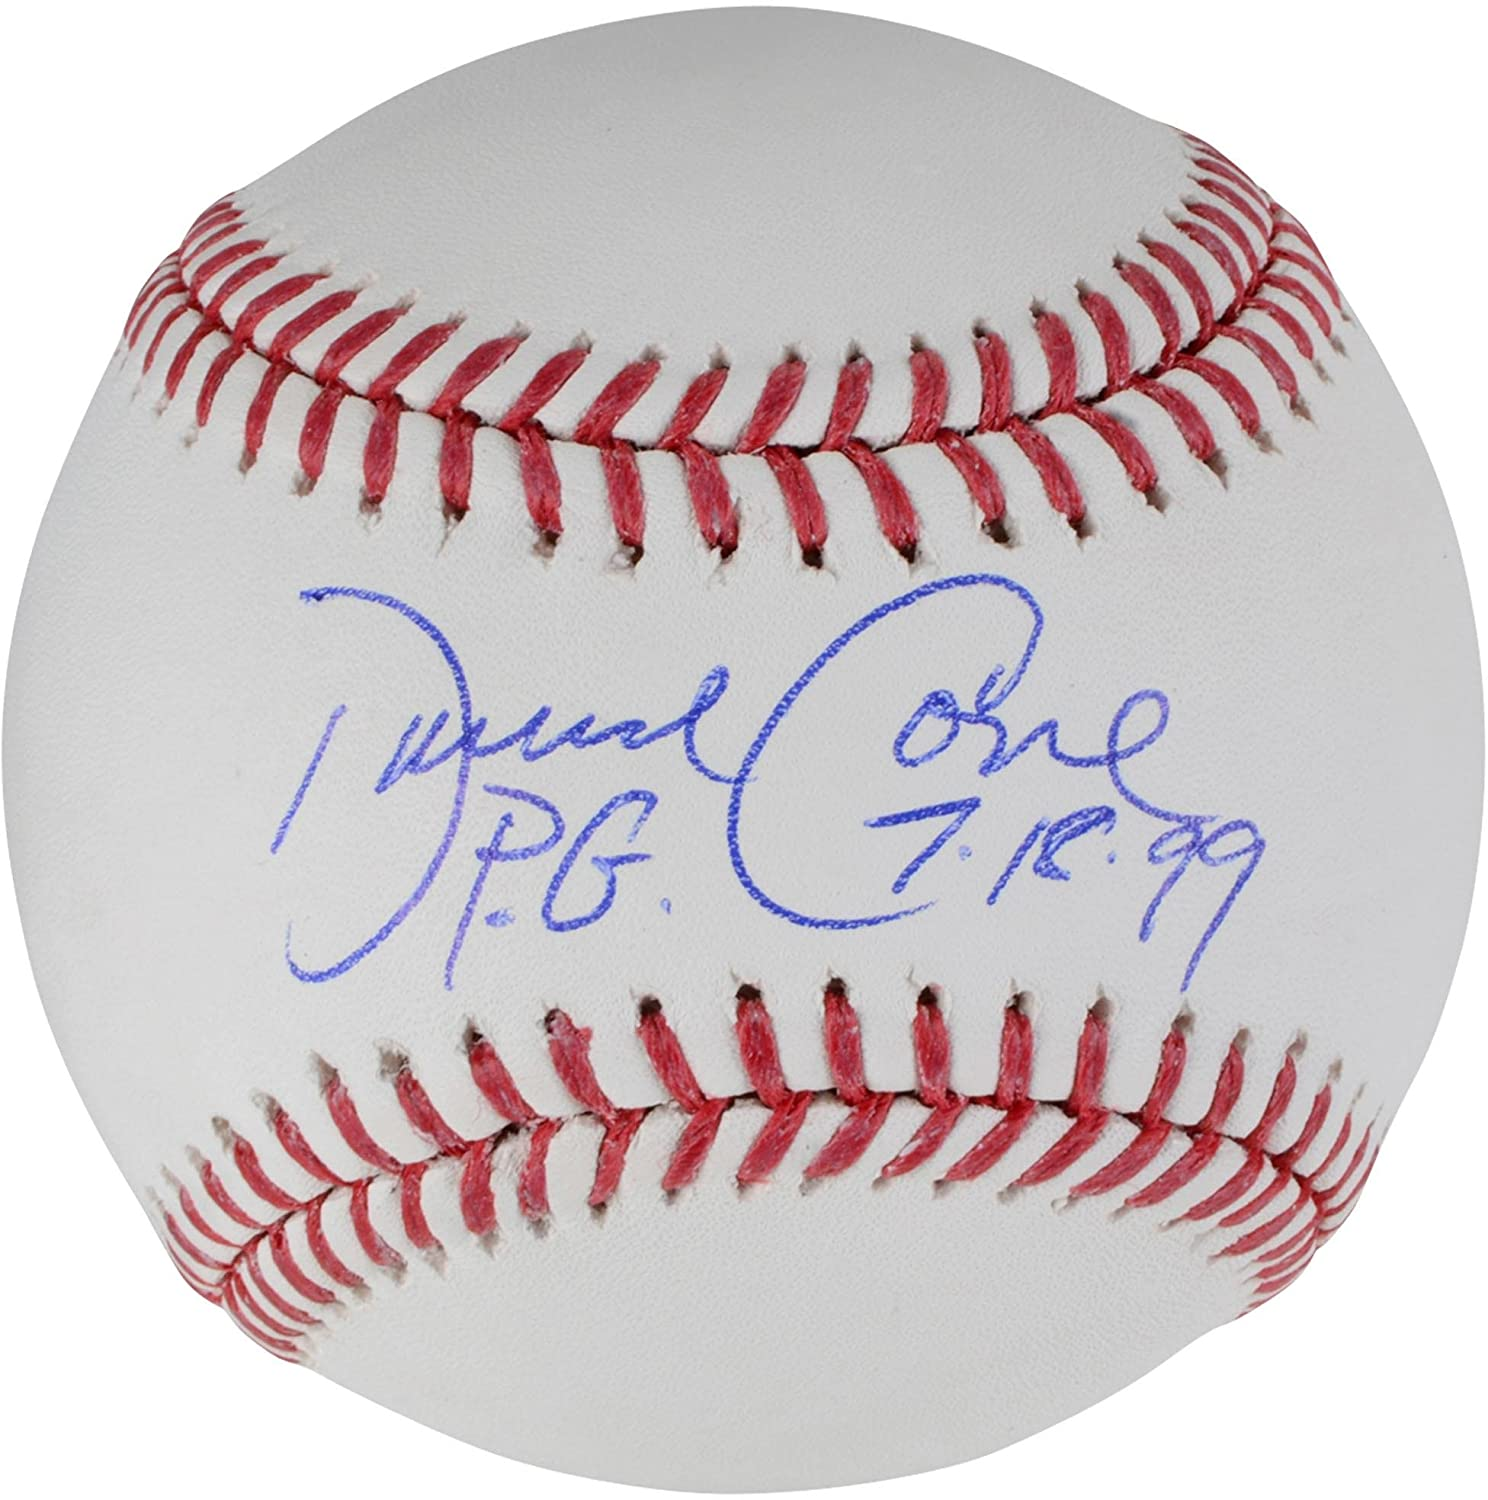 David Cone New York Yankees Autographed Baseball with P.G. 7-18-99 Inscription - Fanatics Authentic Certified